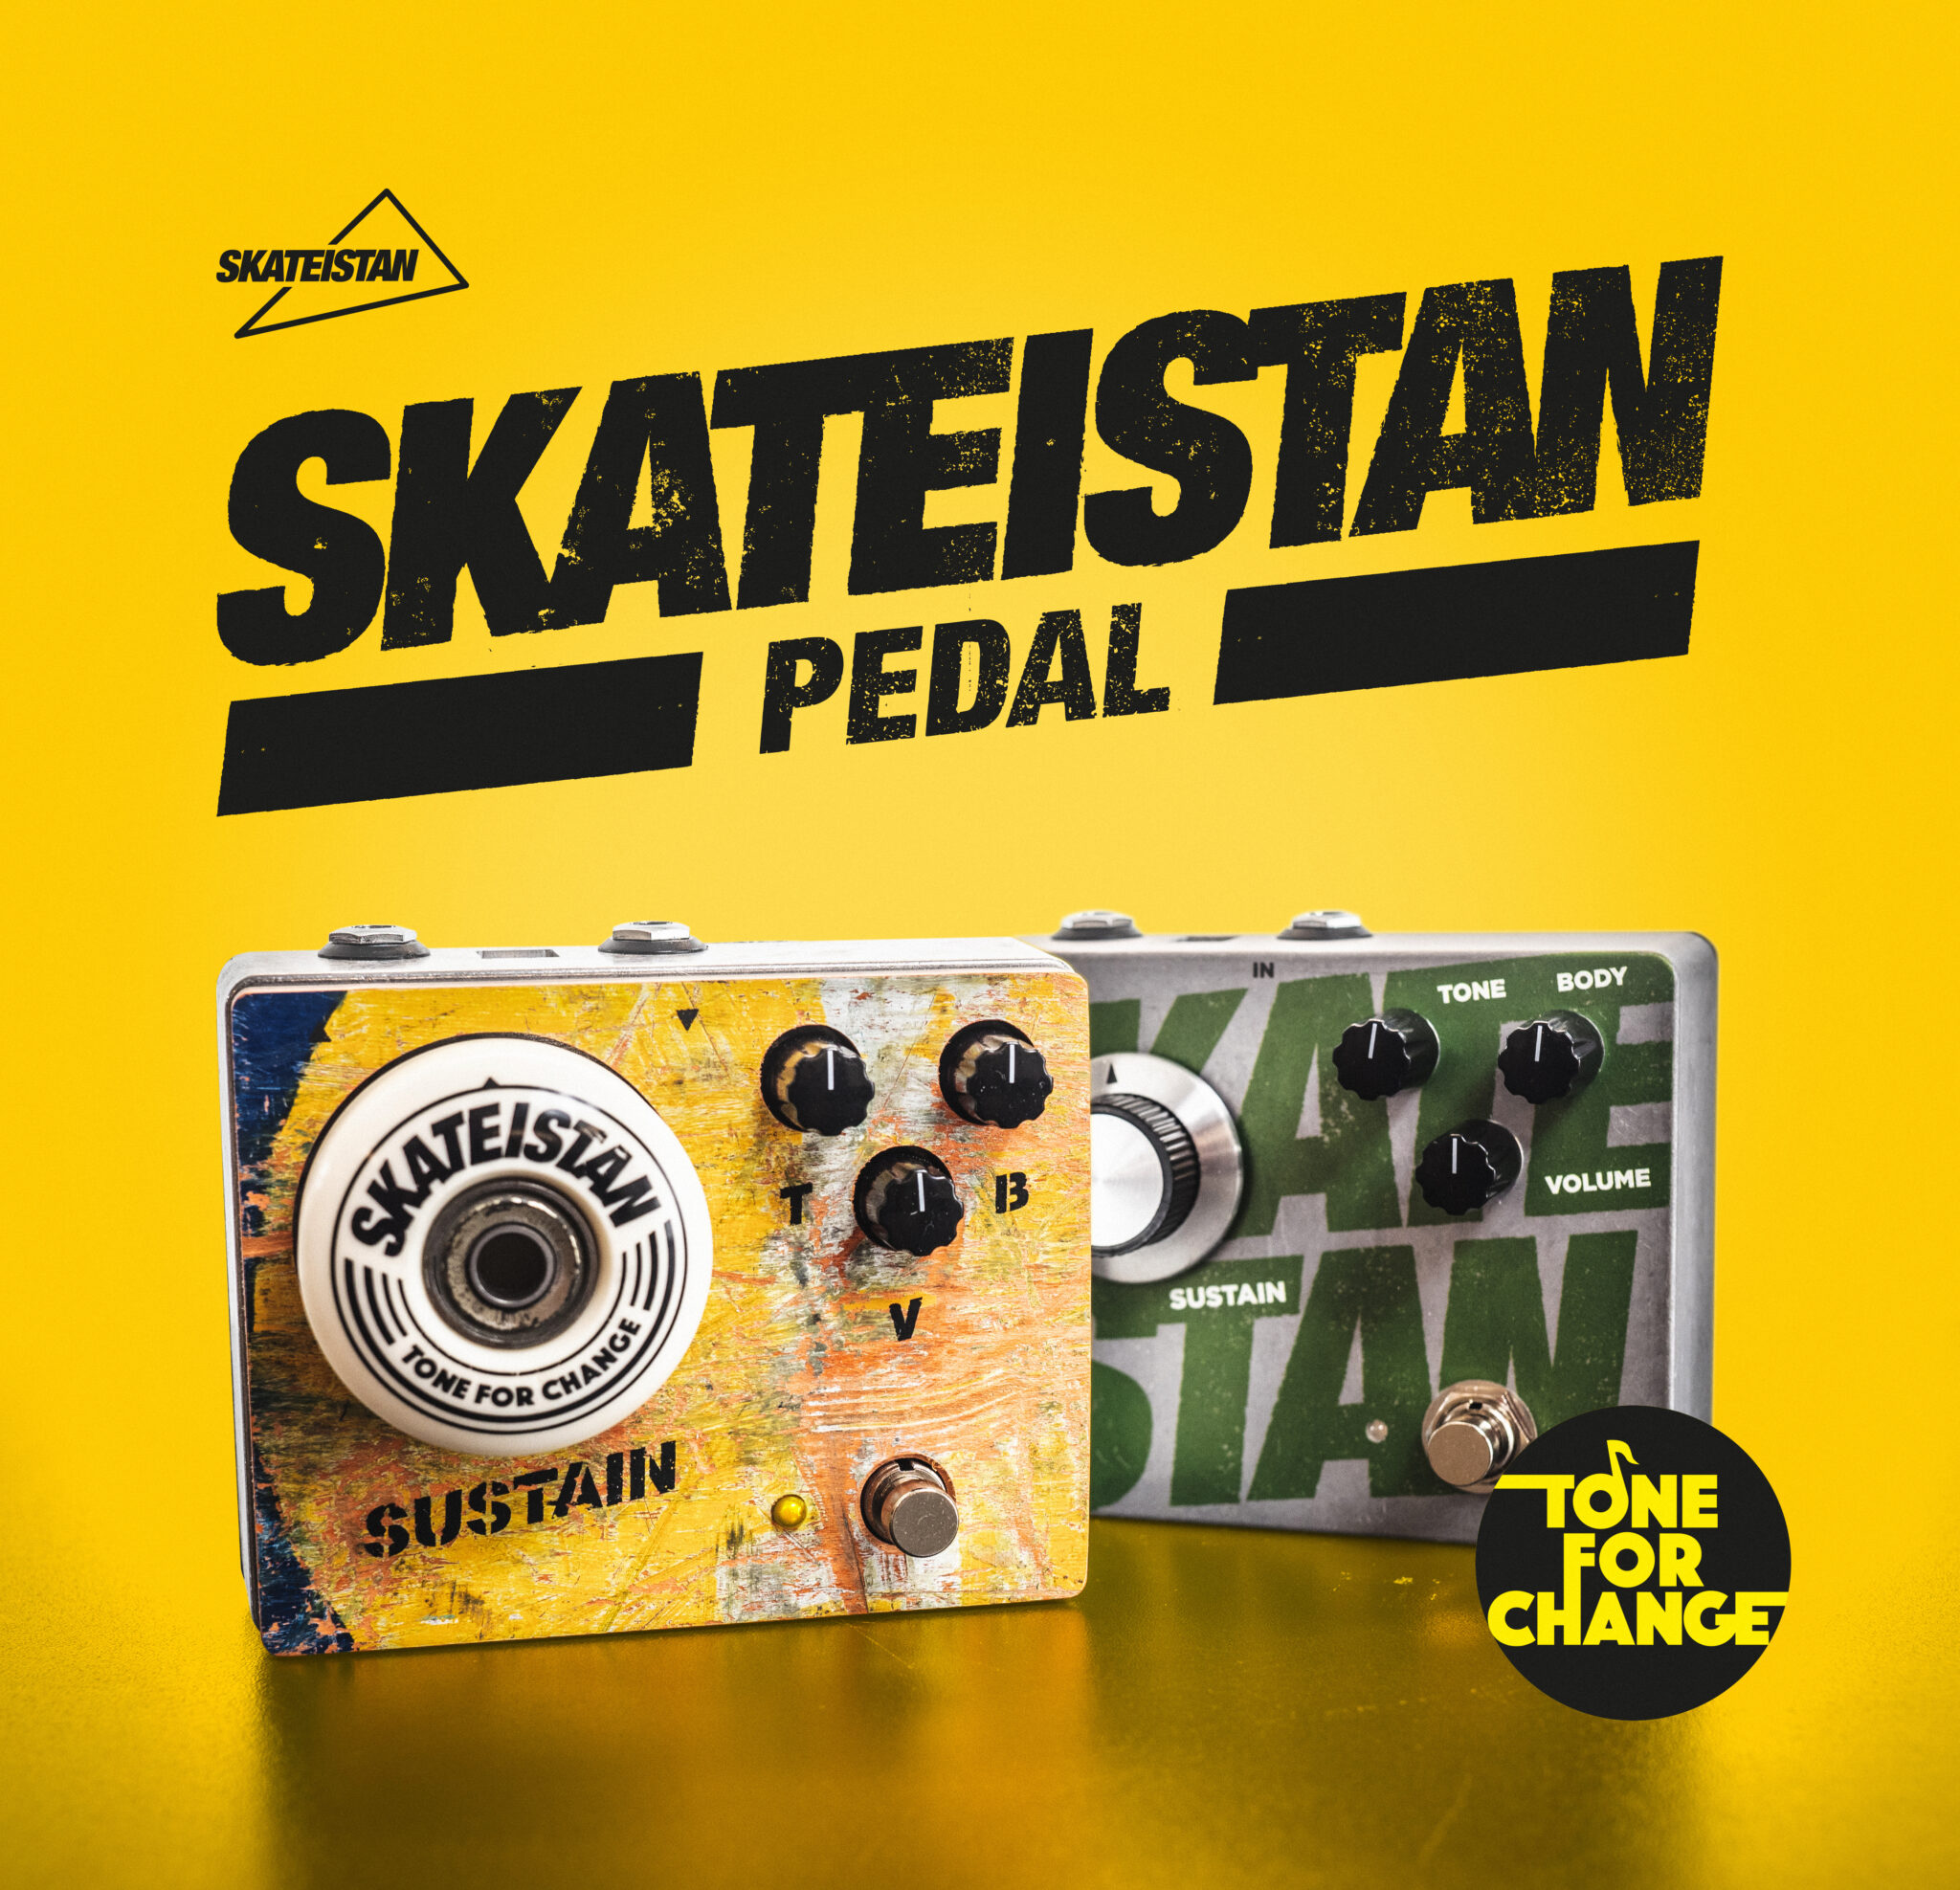 Skateistan Pedals: Made Out Of Skateboards And All Proceeds Go To Charity